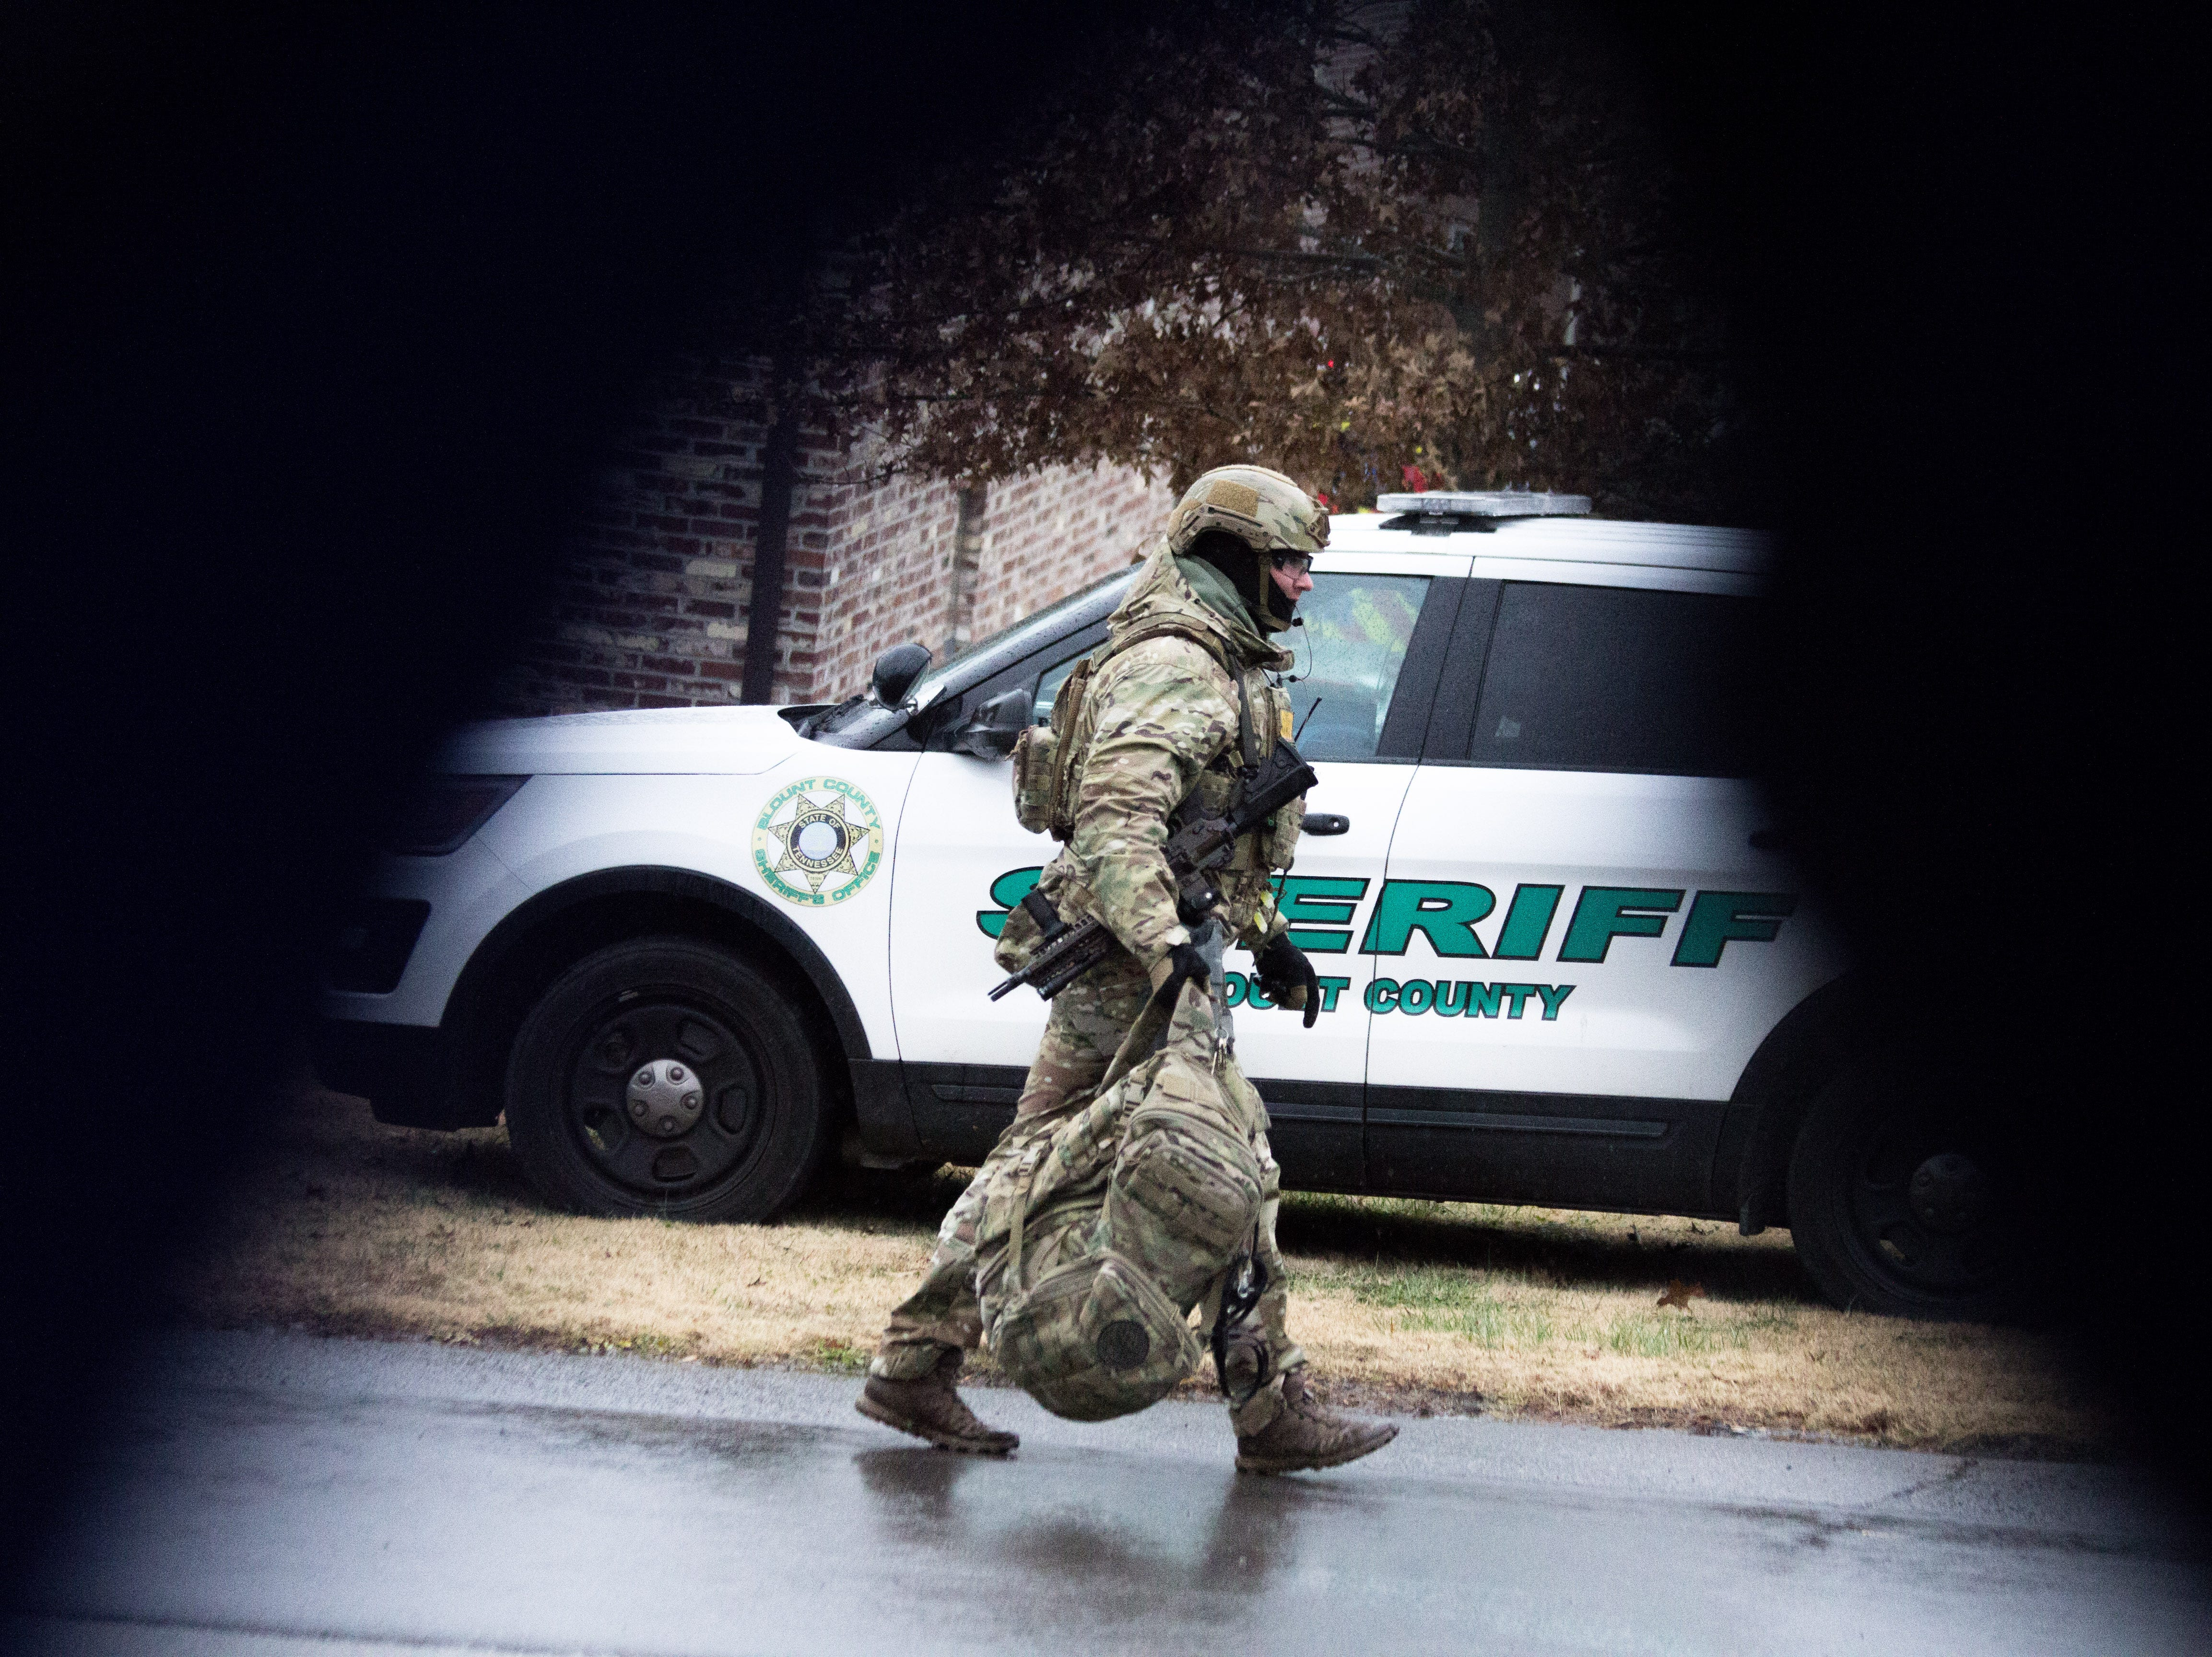 A member of the Blount County SWAT team walks toward the scene of a standoff just before officers fired shots at a man who came out with a gun. The man then shot himself and died Dec. 8, 2018.